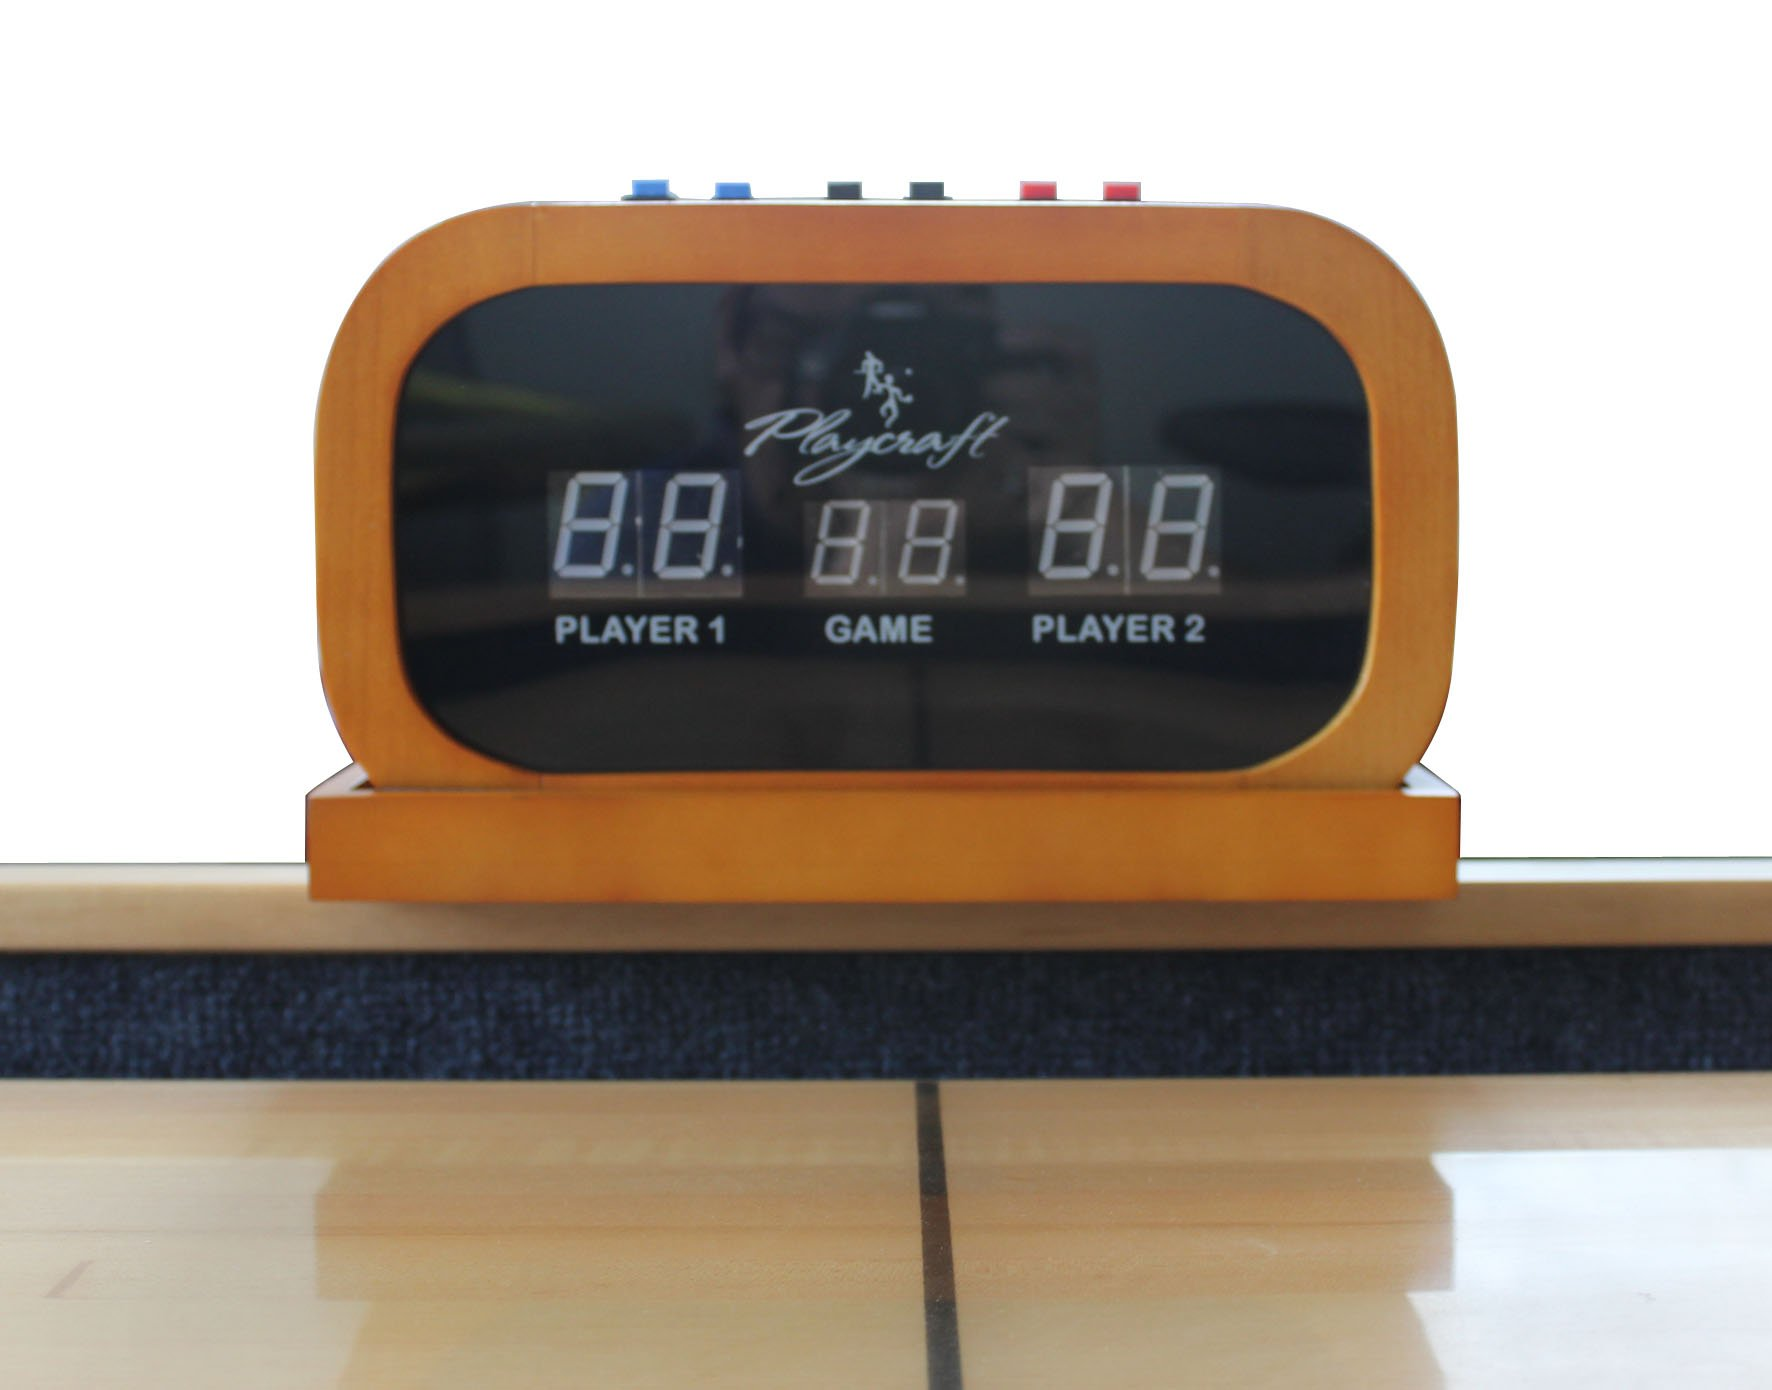 Playcraft Electronic Scorer for Home Recreation Shuffleboard Table - Honey by Playcraft